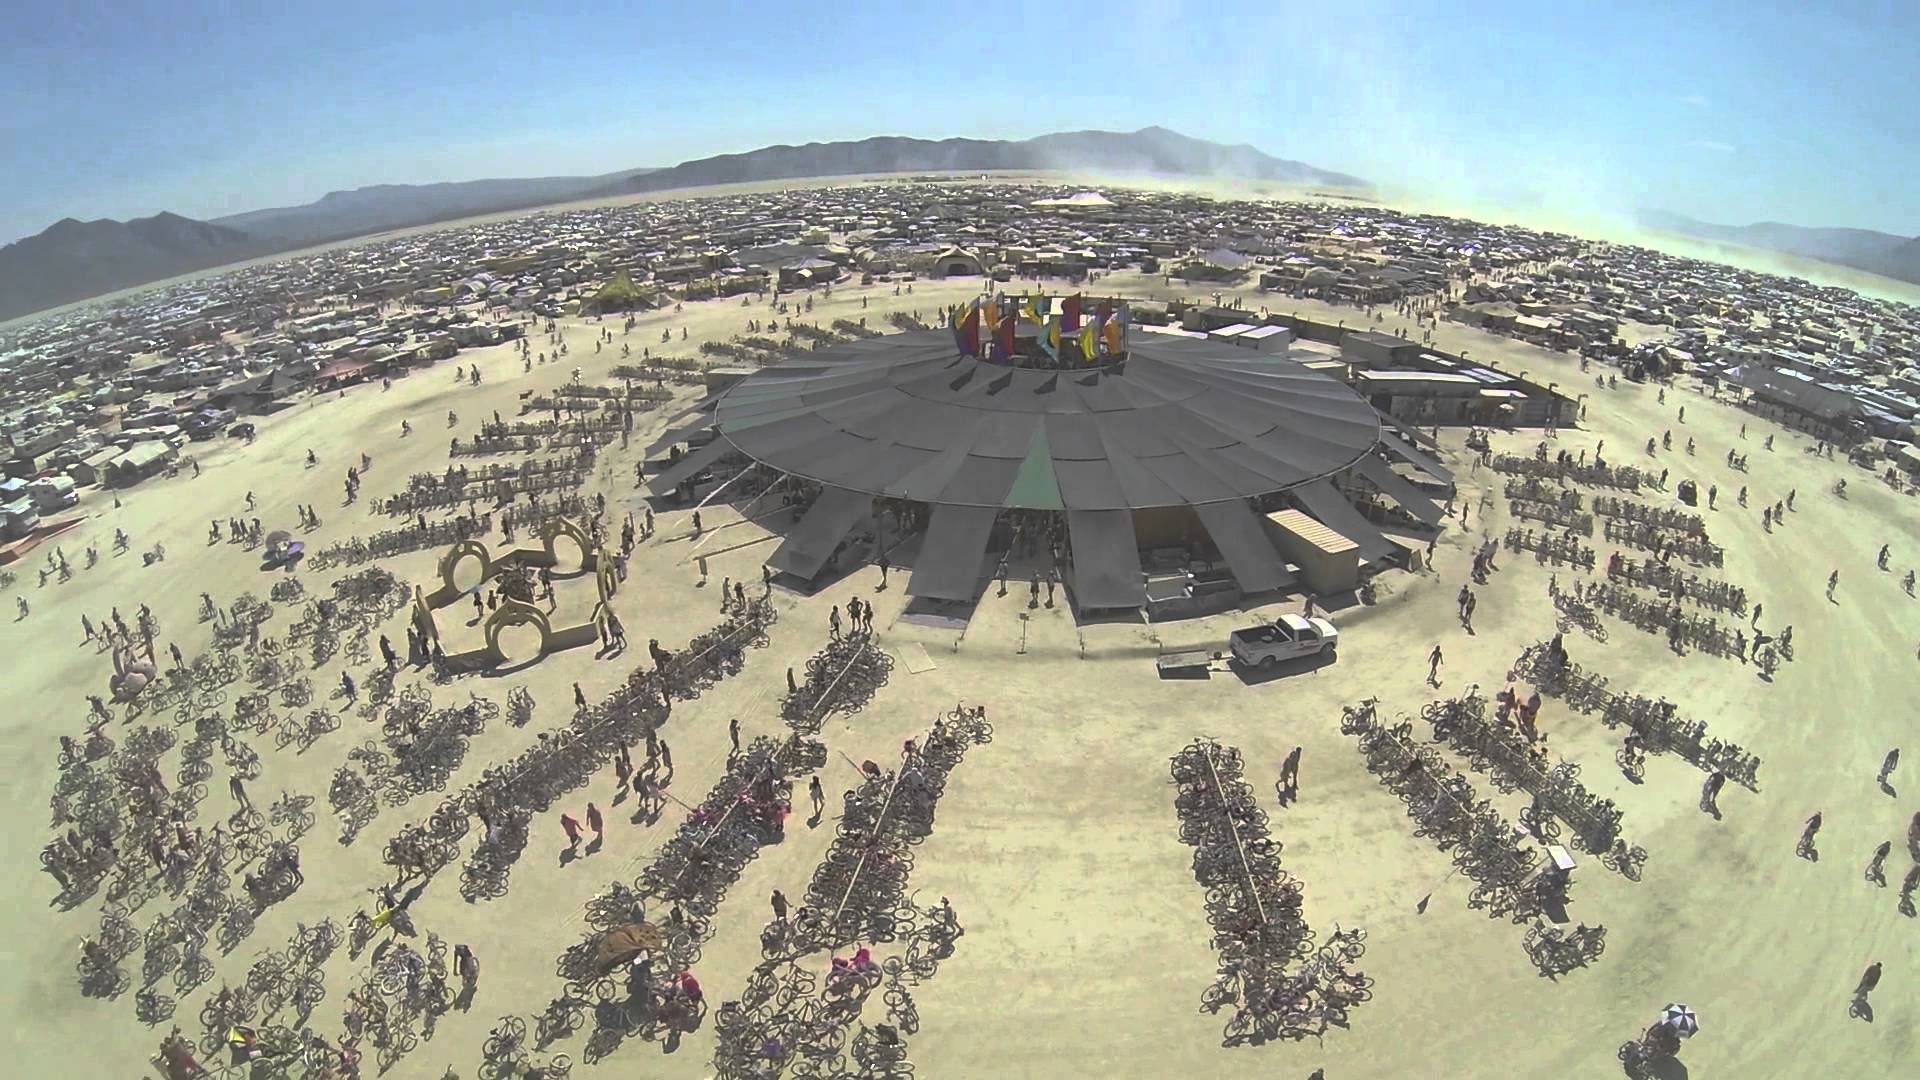 Burning Man Festival Wallpapers HD Backgrounds, Image, Pics, Photos